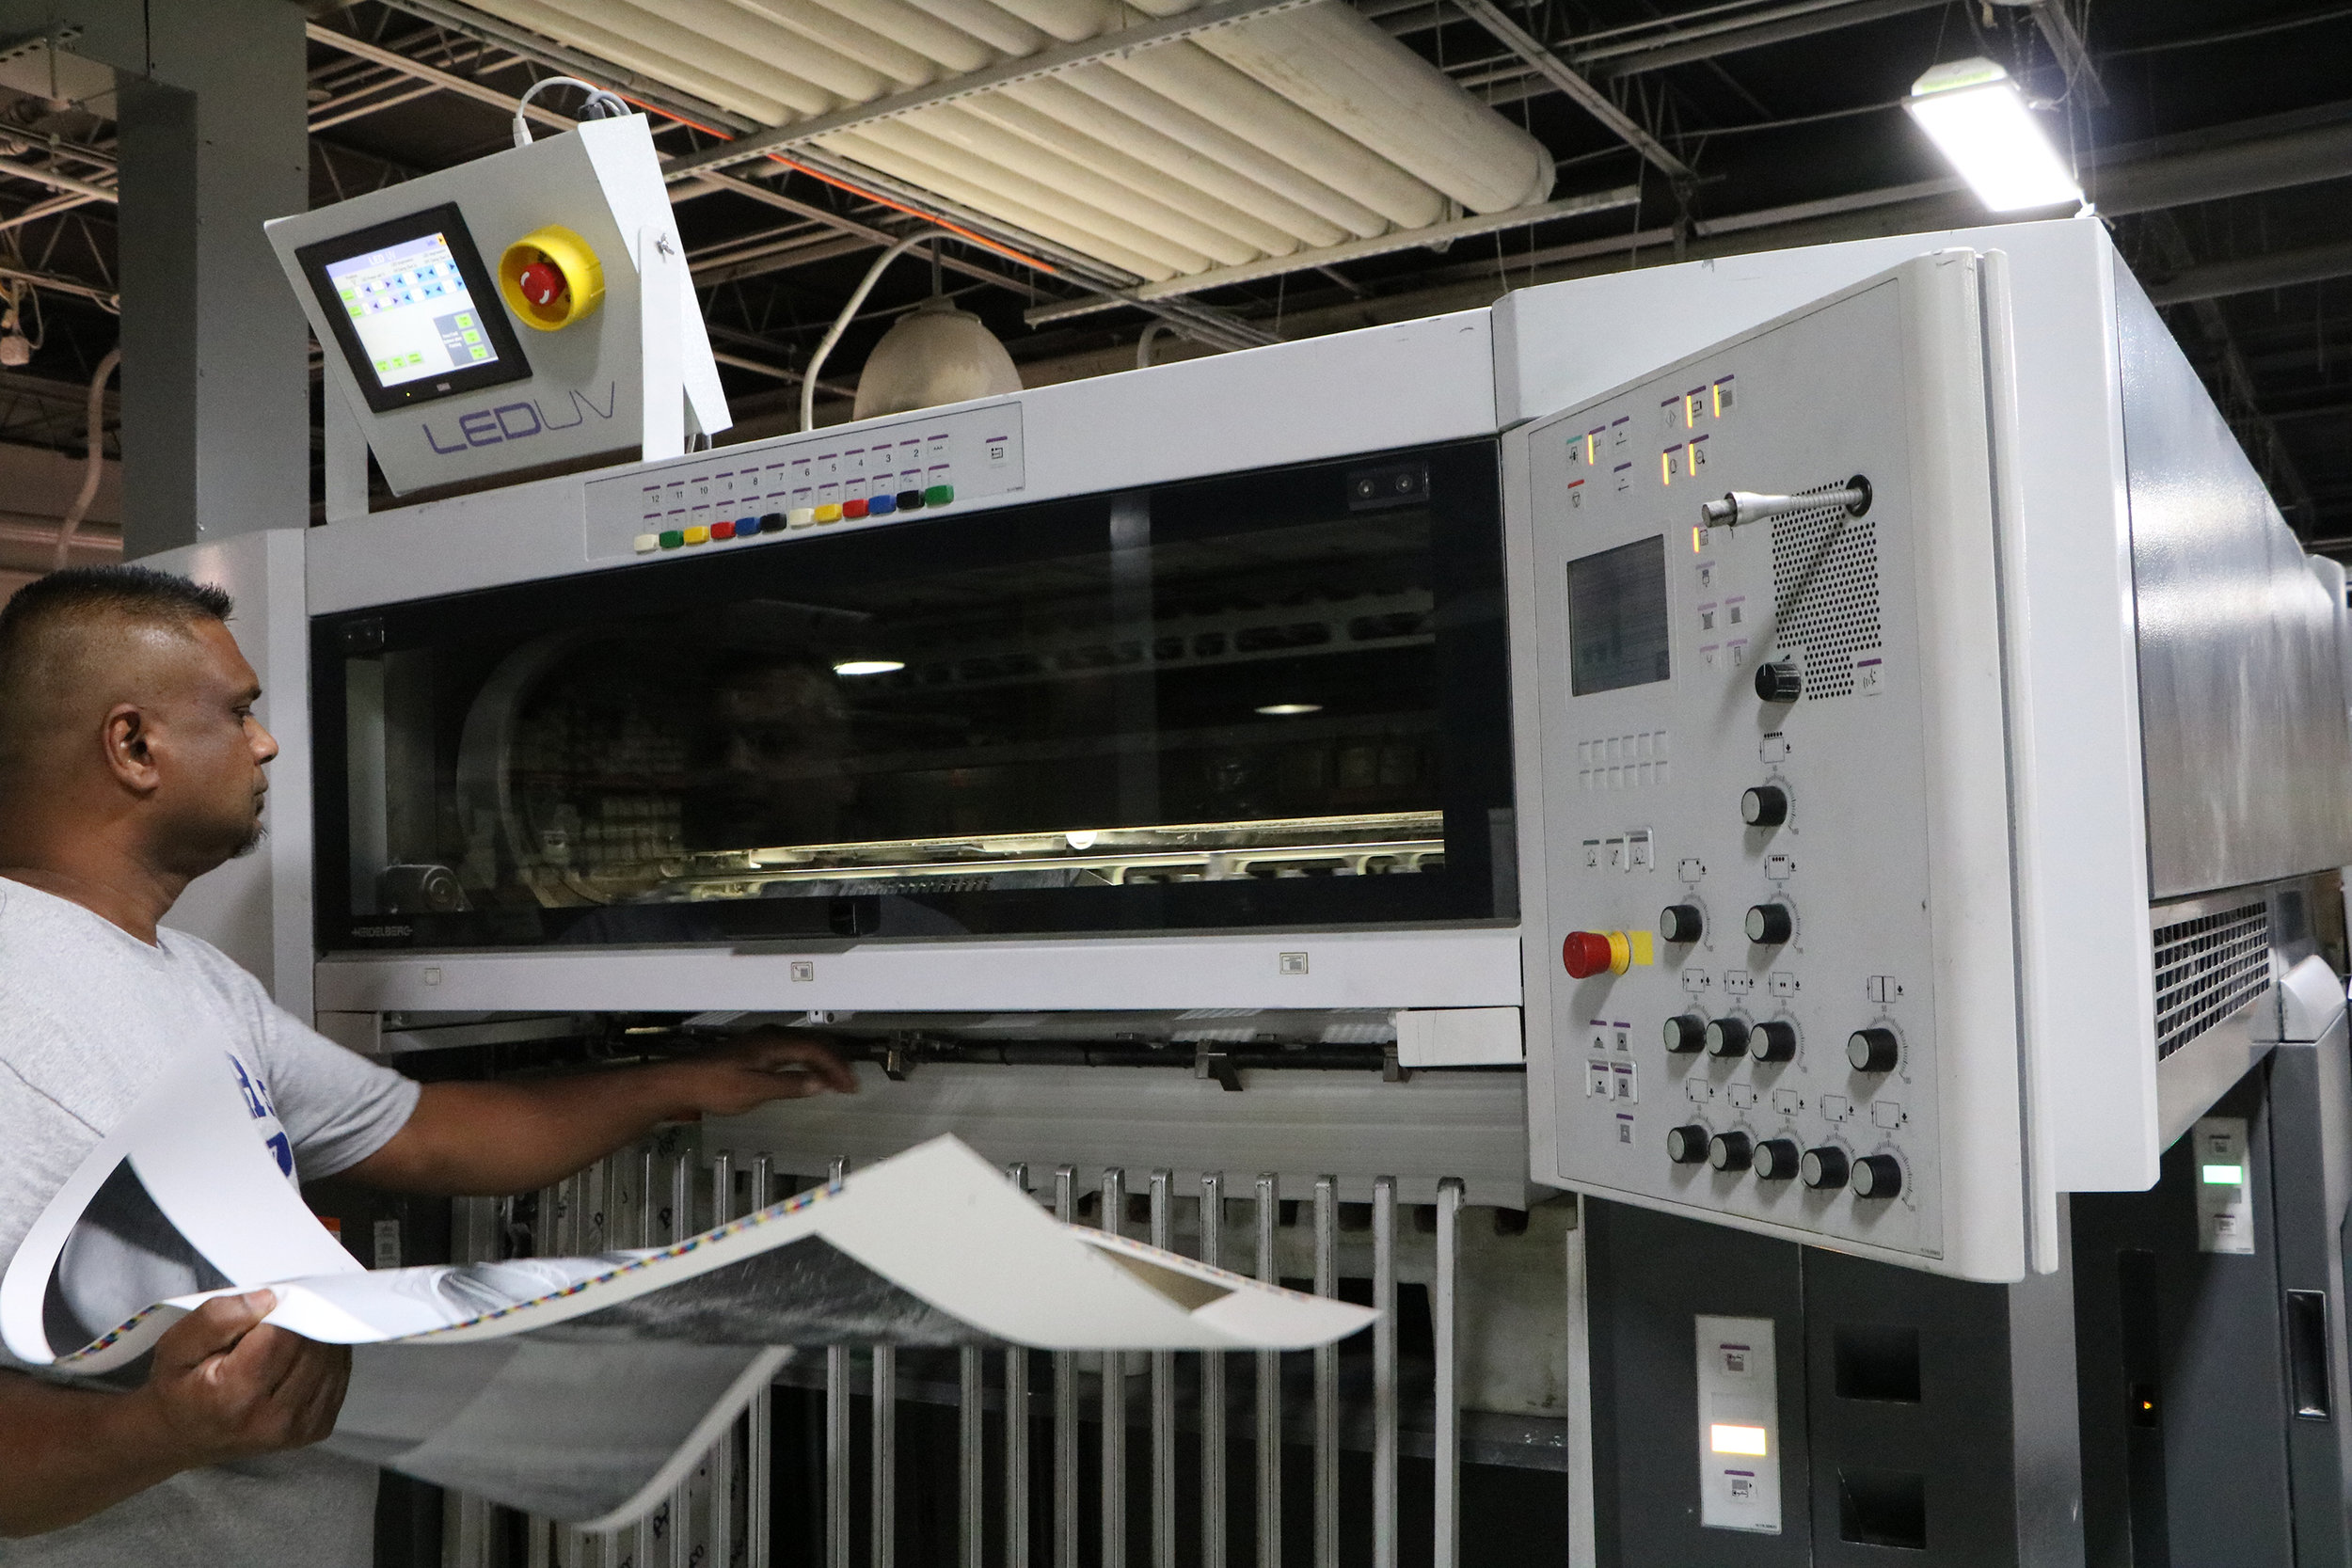 A Starnet press-team member pulls a dry sheet off of the press for checking.